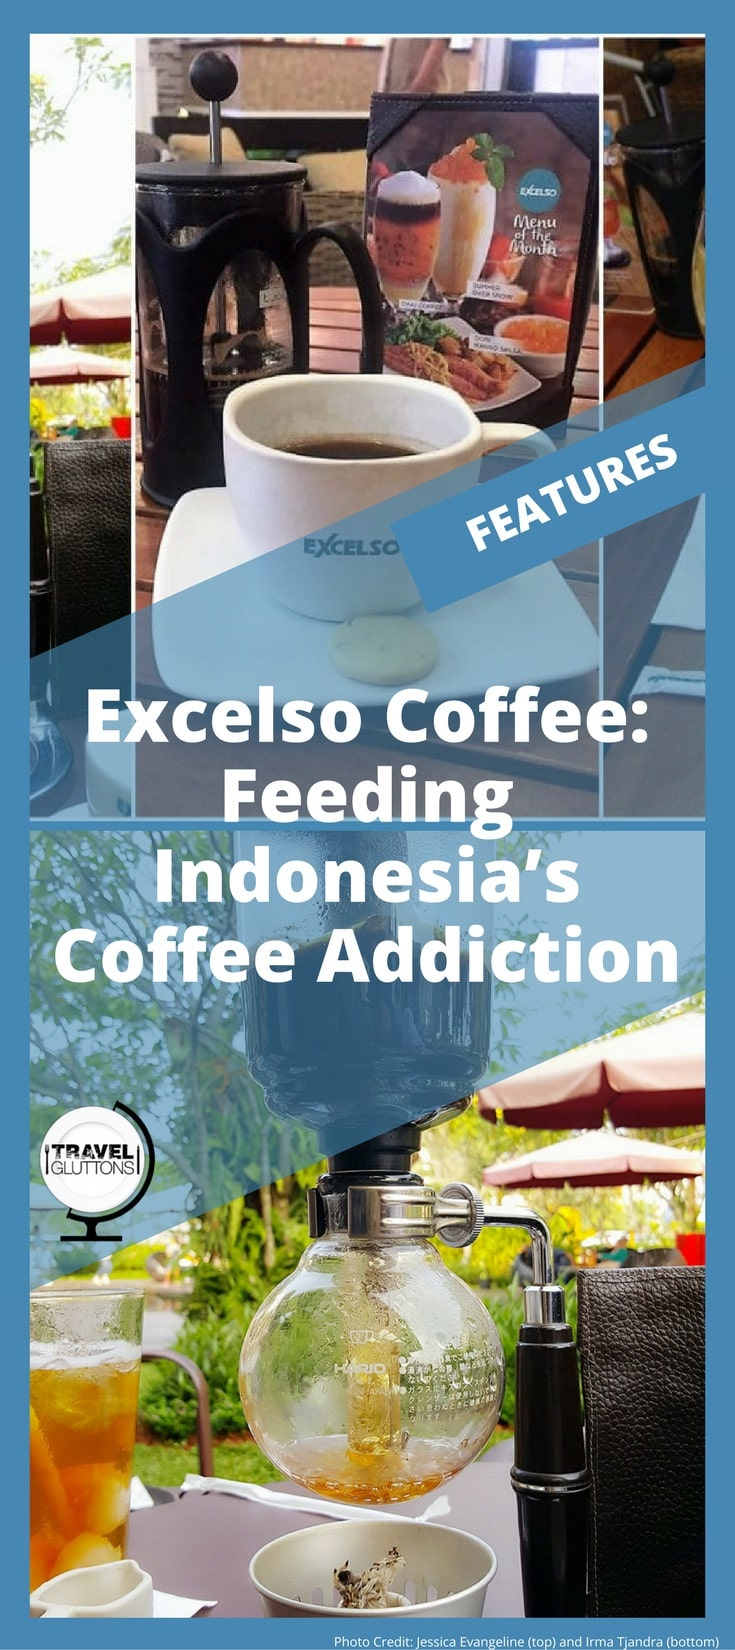 Do you want to enjoy an authentic local coffee in Indonesia and even choose the brewing method that you like best? Then you need to visit an Excelso Coffee restaurant and cafe.